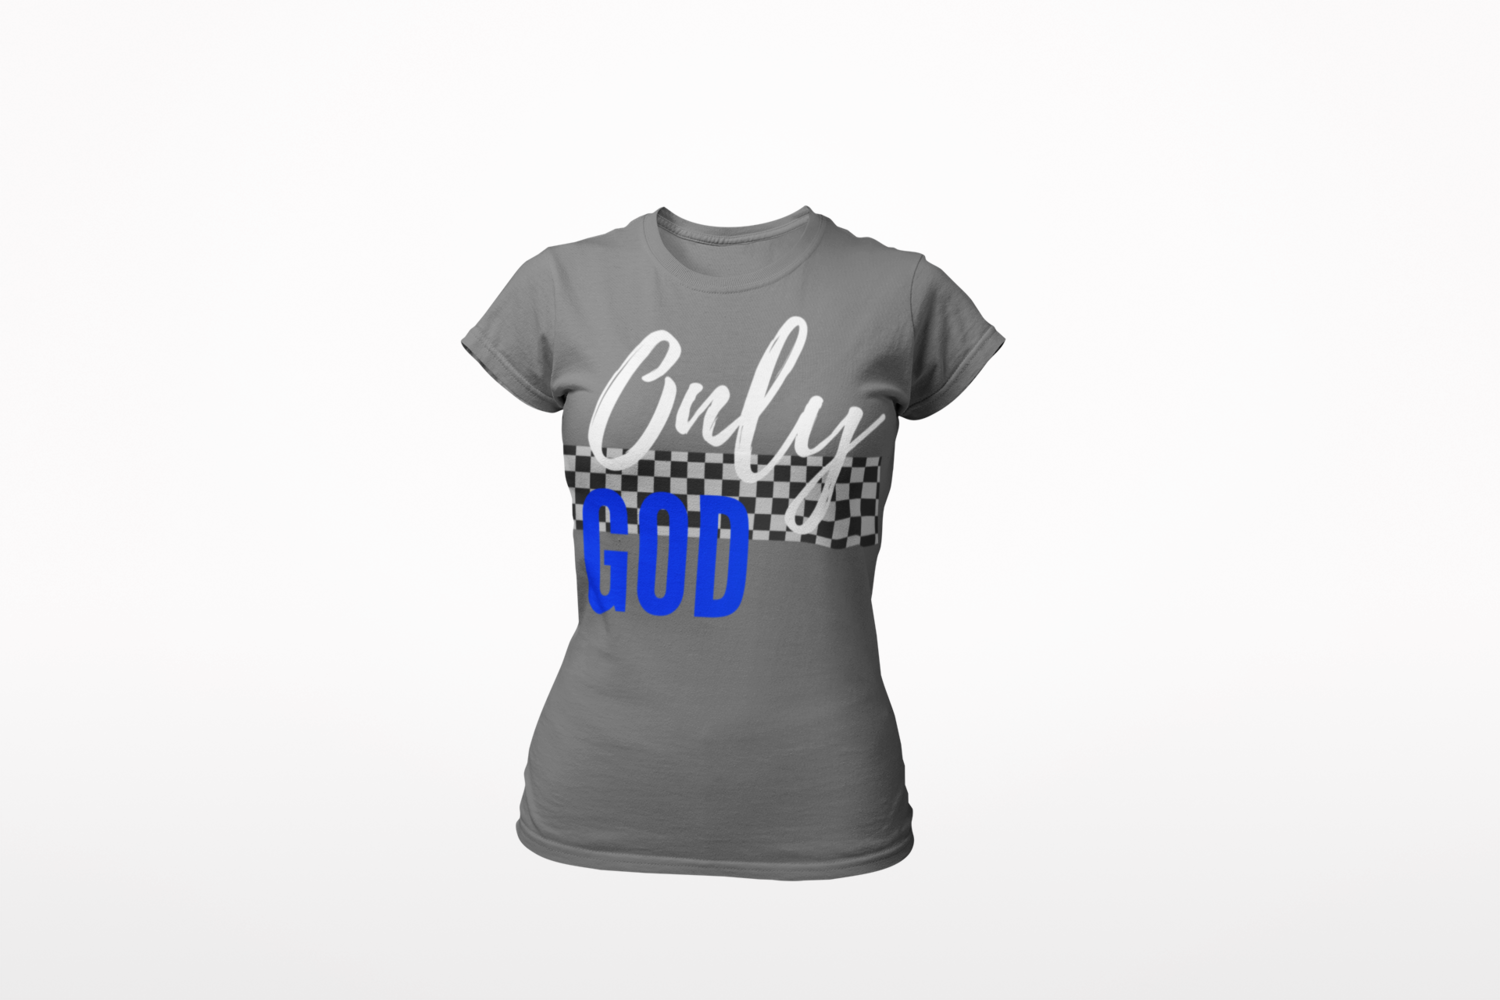 Only God| Women's Tee | Racer Stripe | Gray T-Shirt